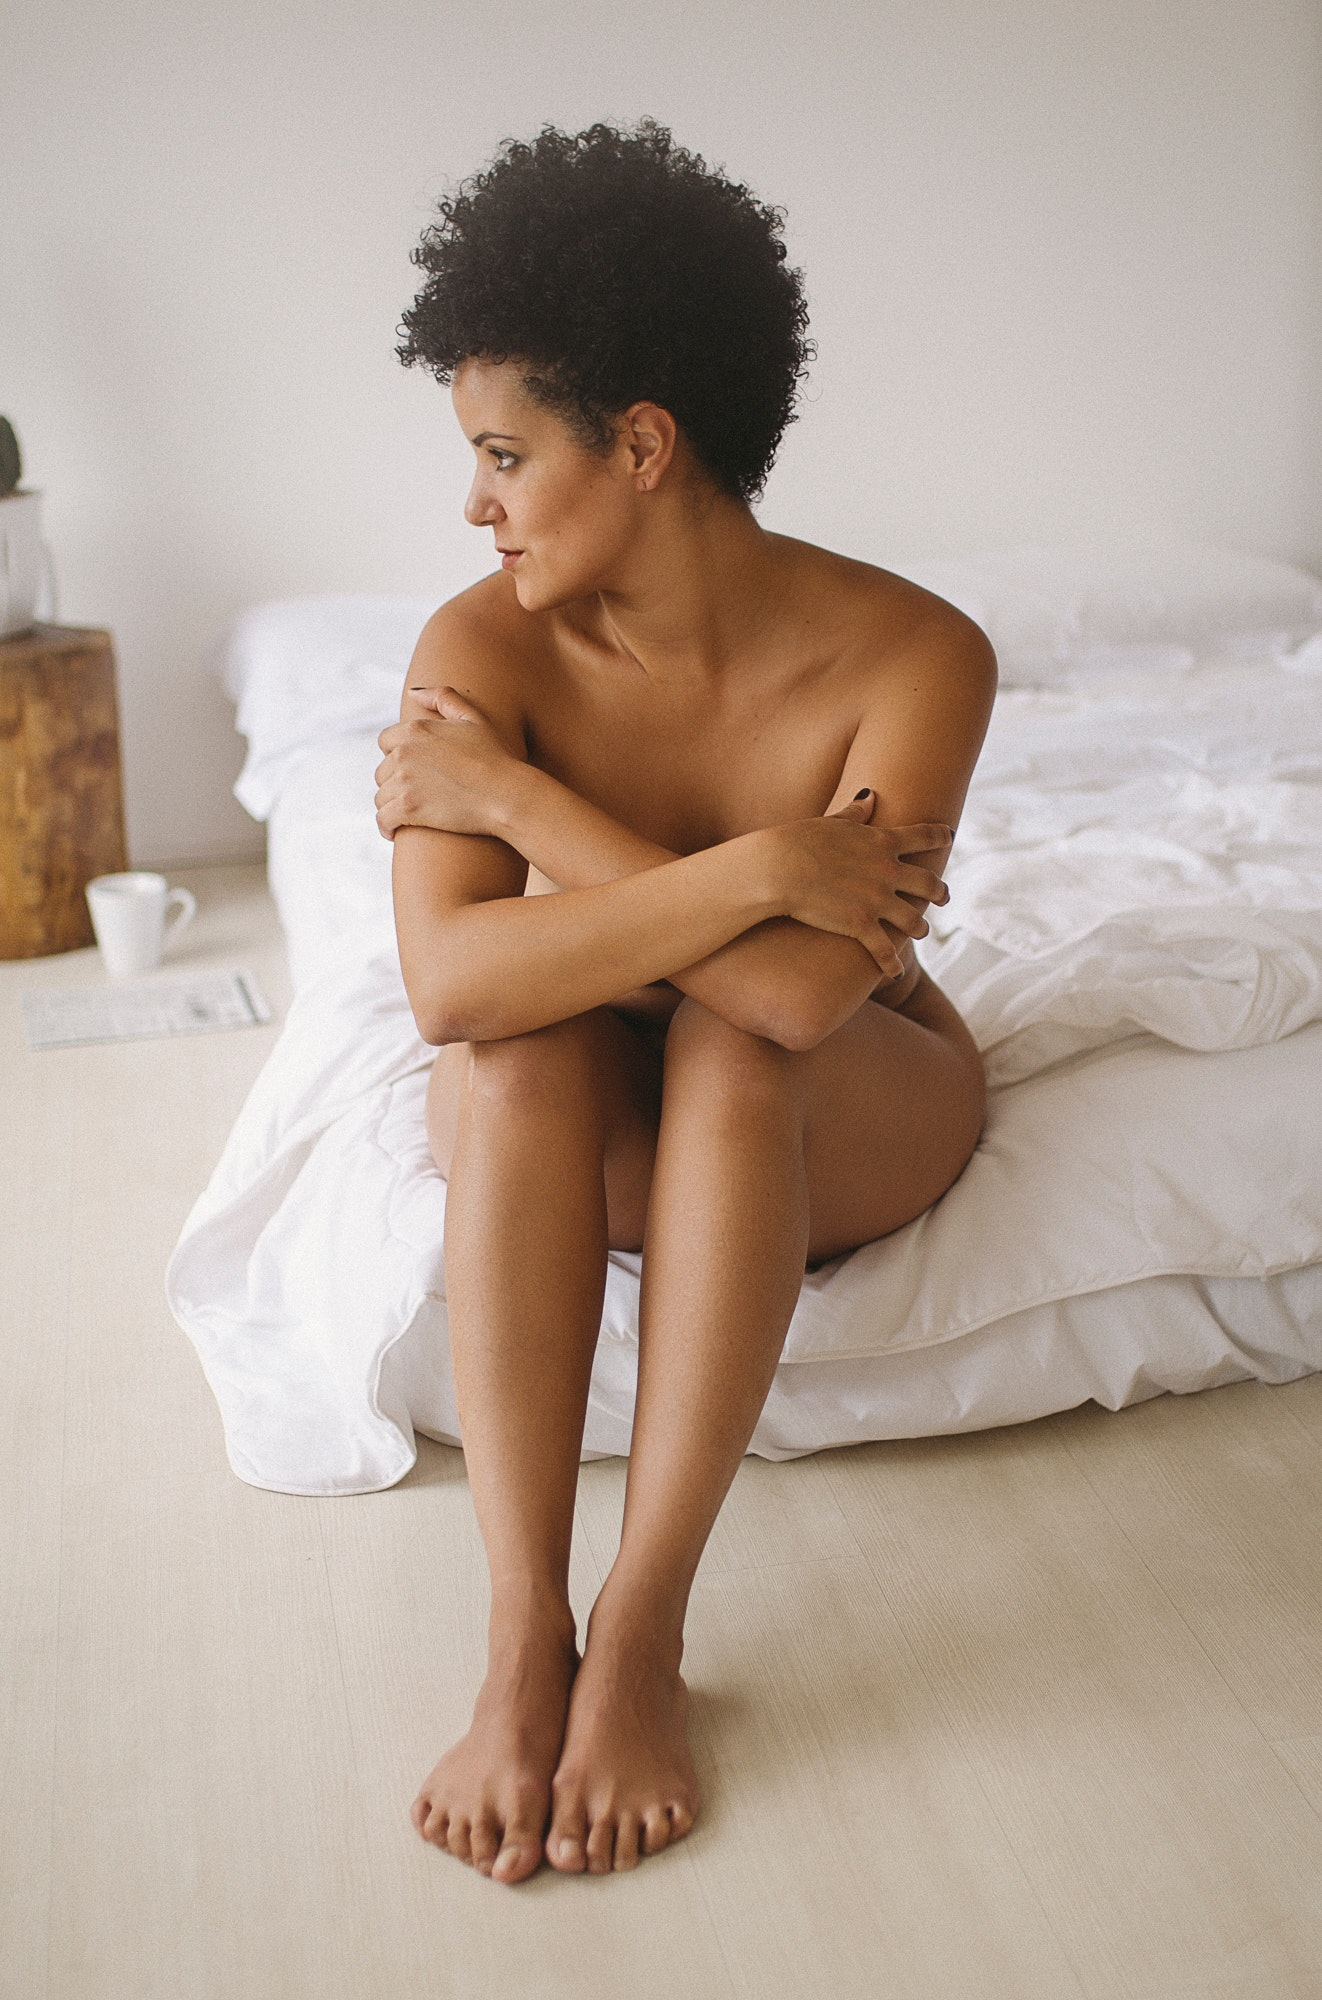 Naked Woman Sitting On Bed In Bedroom Free Stock Photo